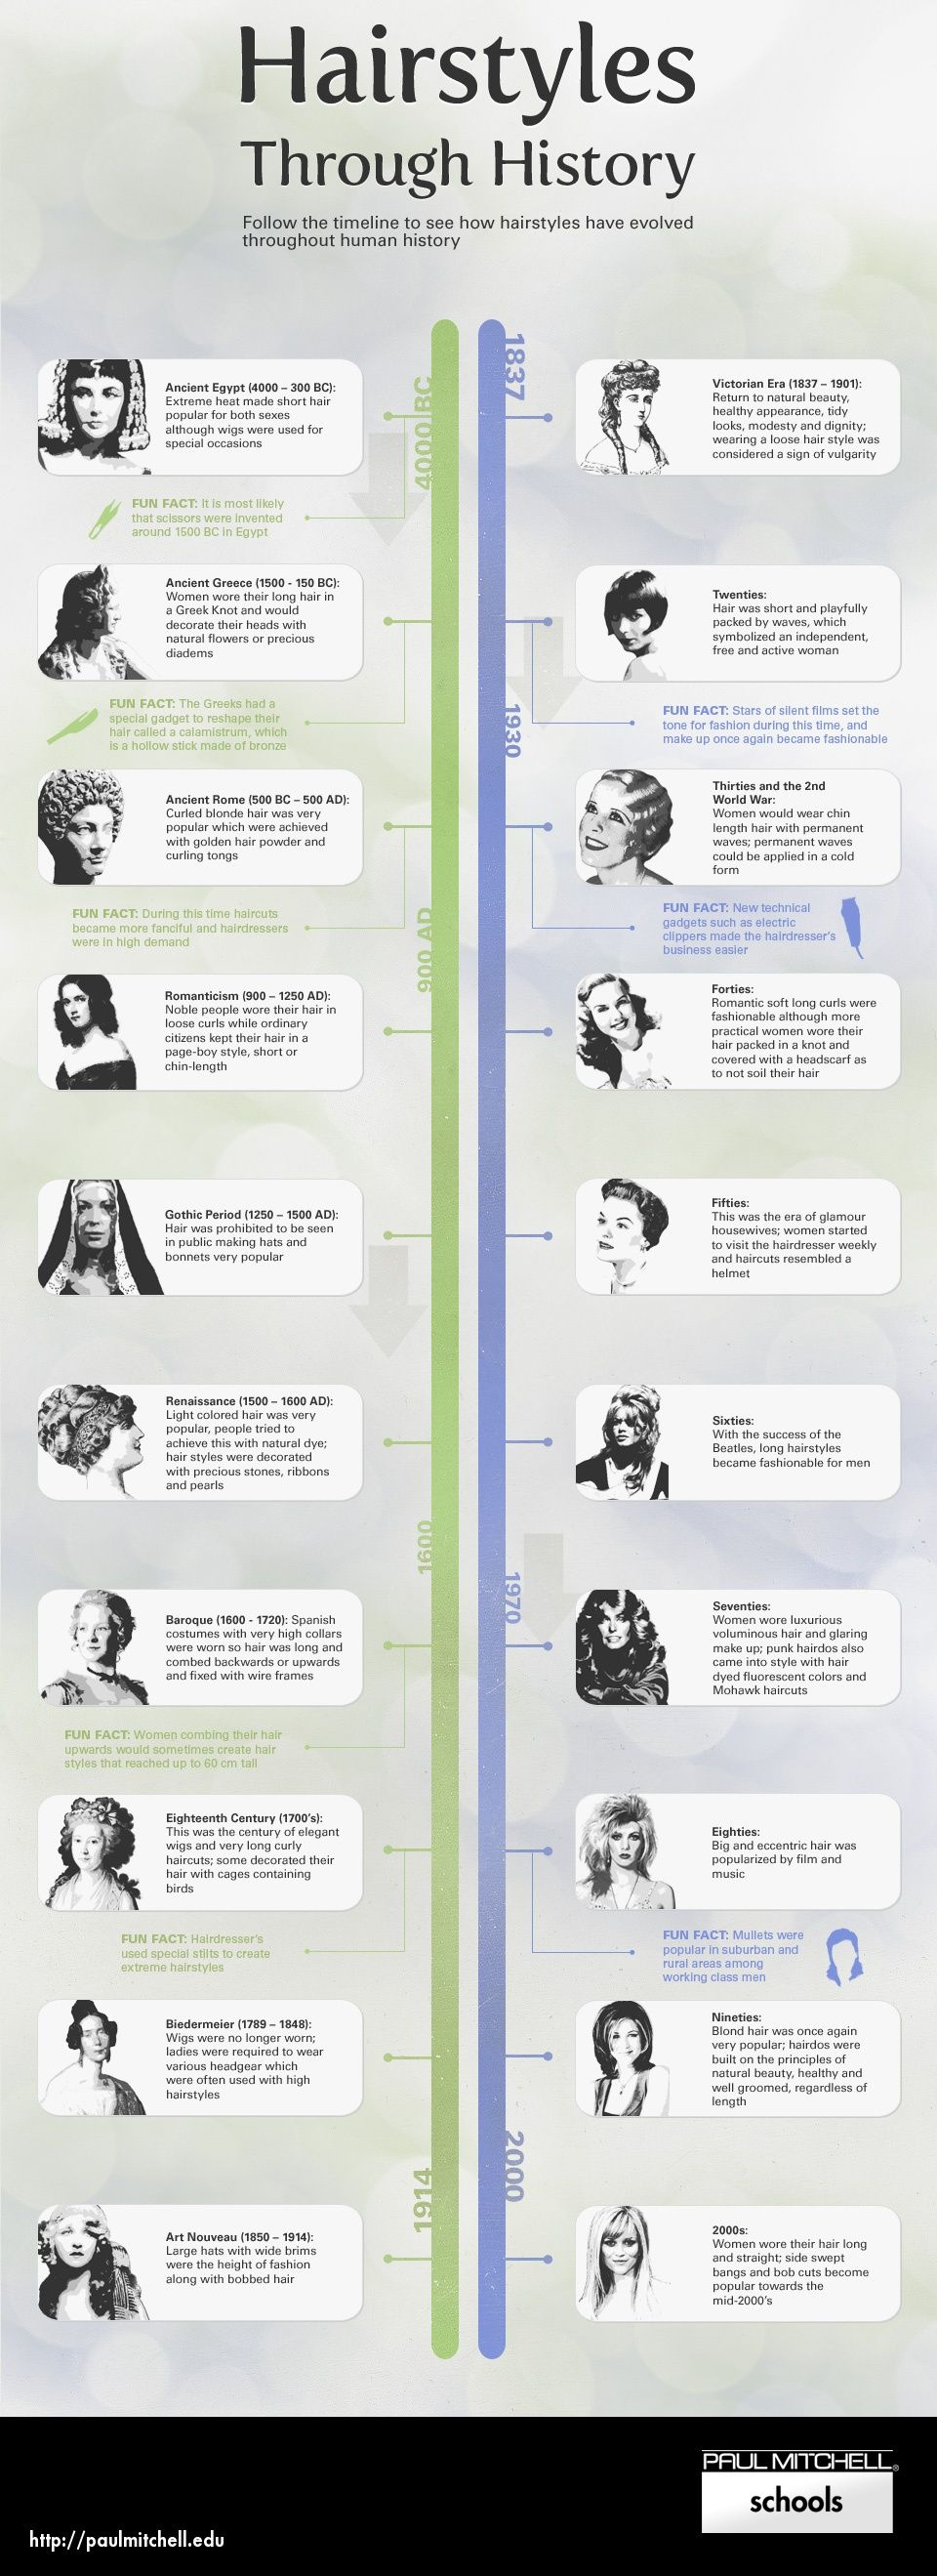 hairstyles through history infographic http://alifetimelegacy